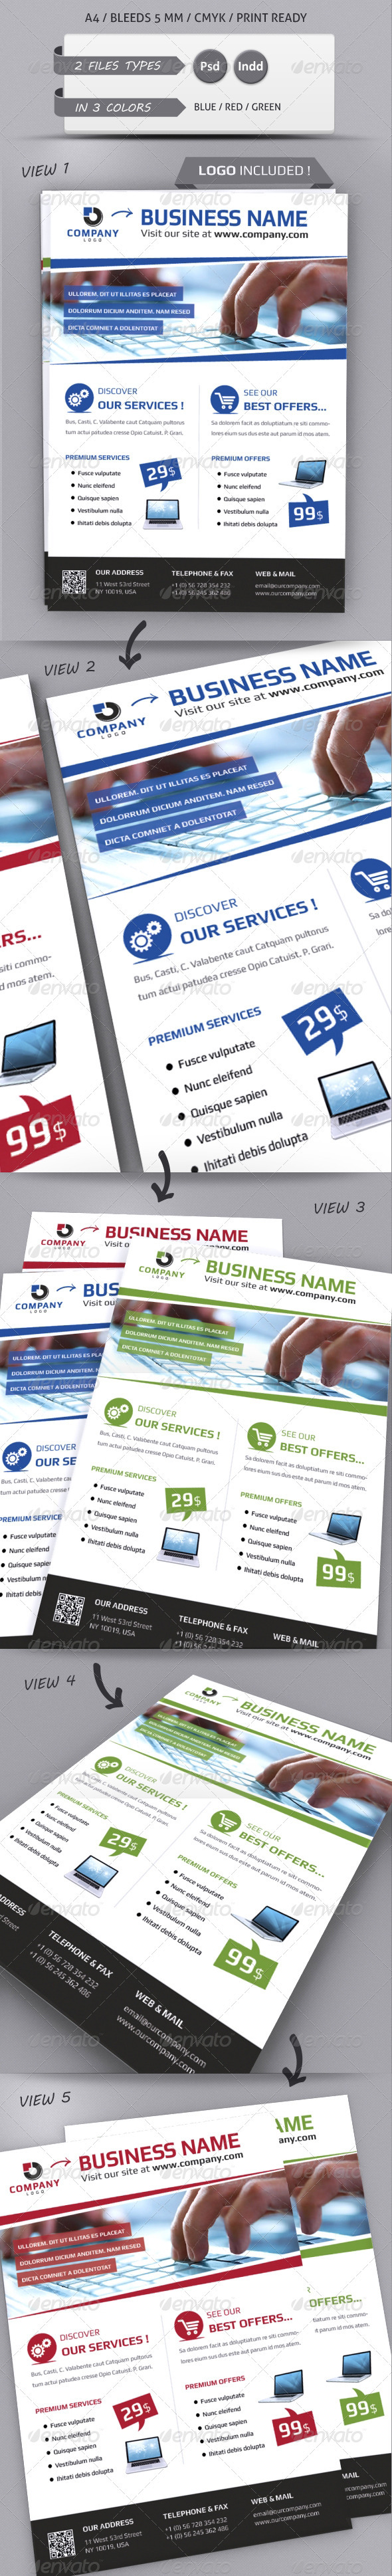 GraphicRiver MODERN BUSINESS FLYER TEMPLATE A4 2687576